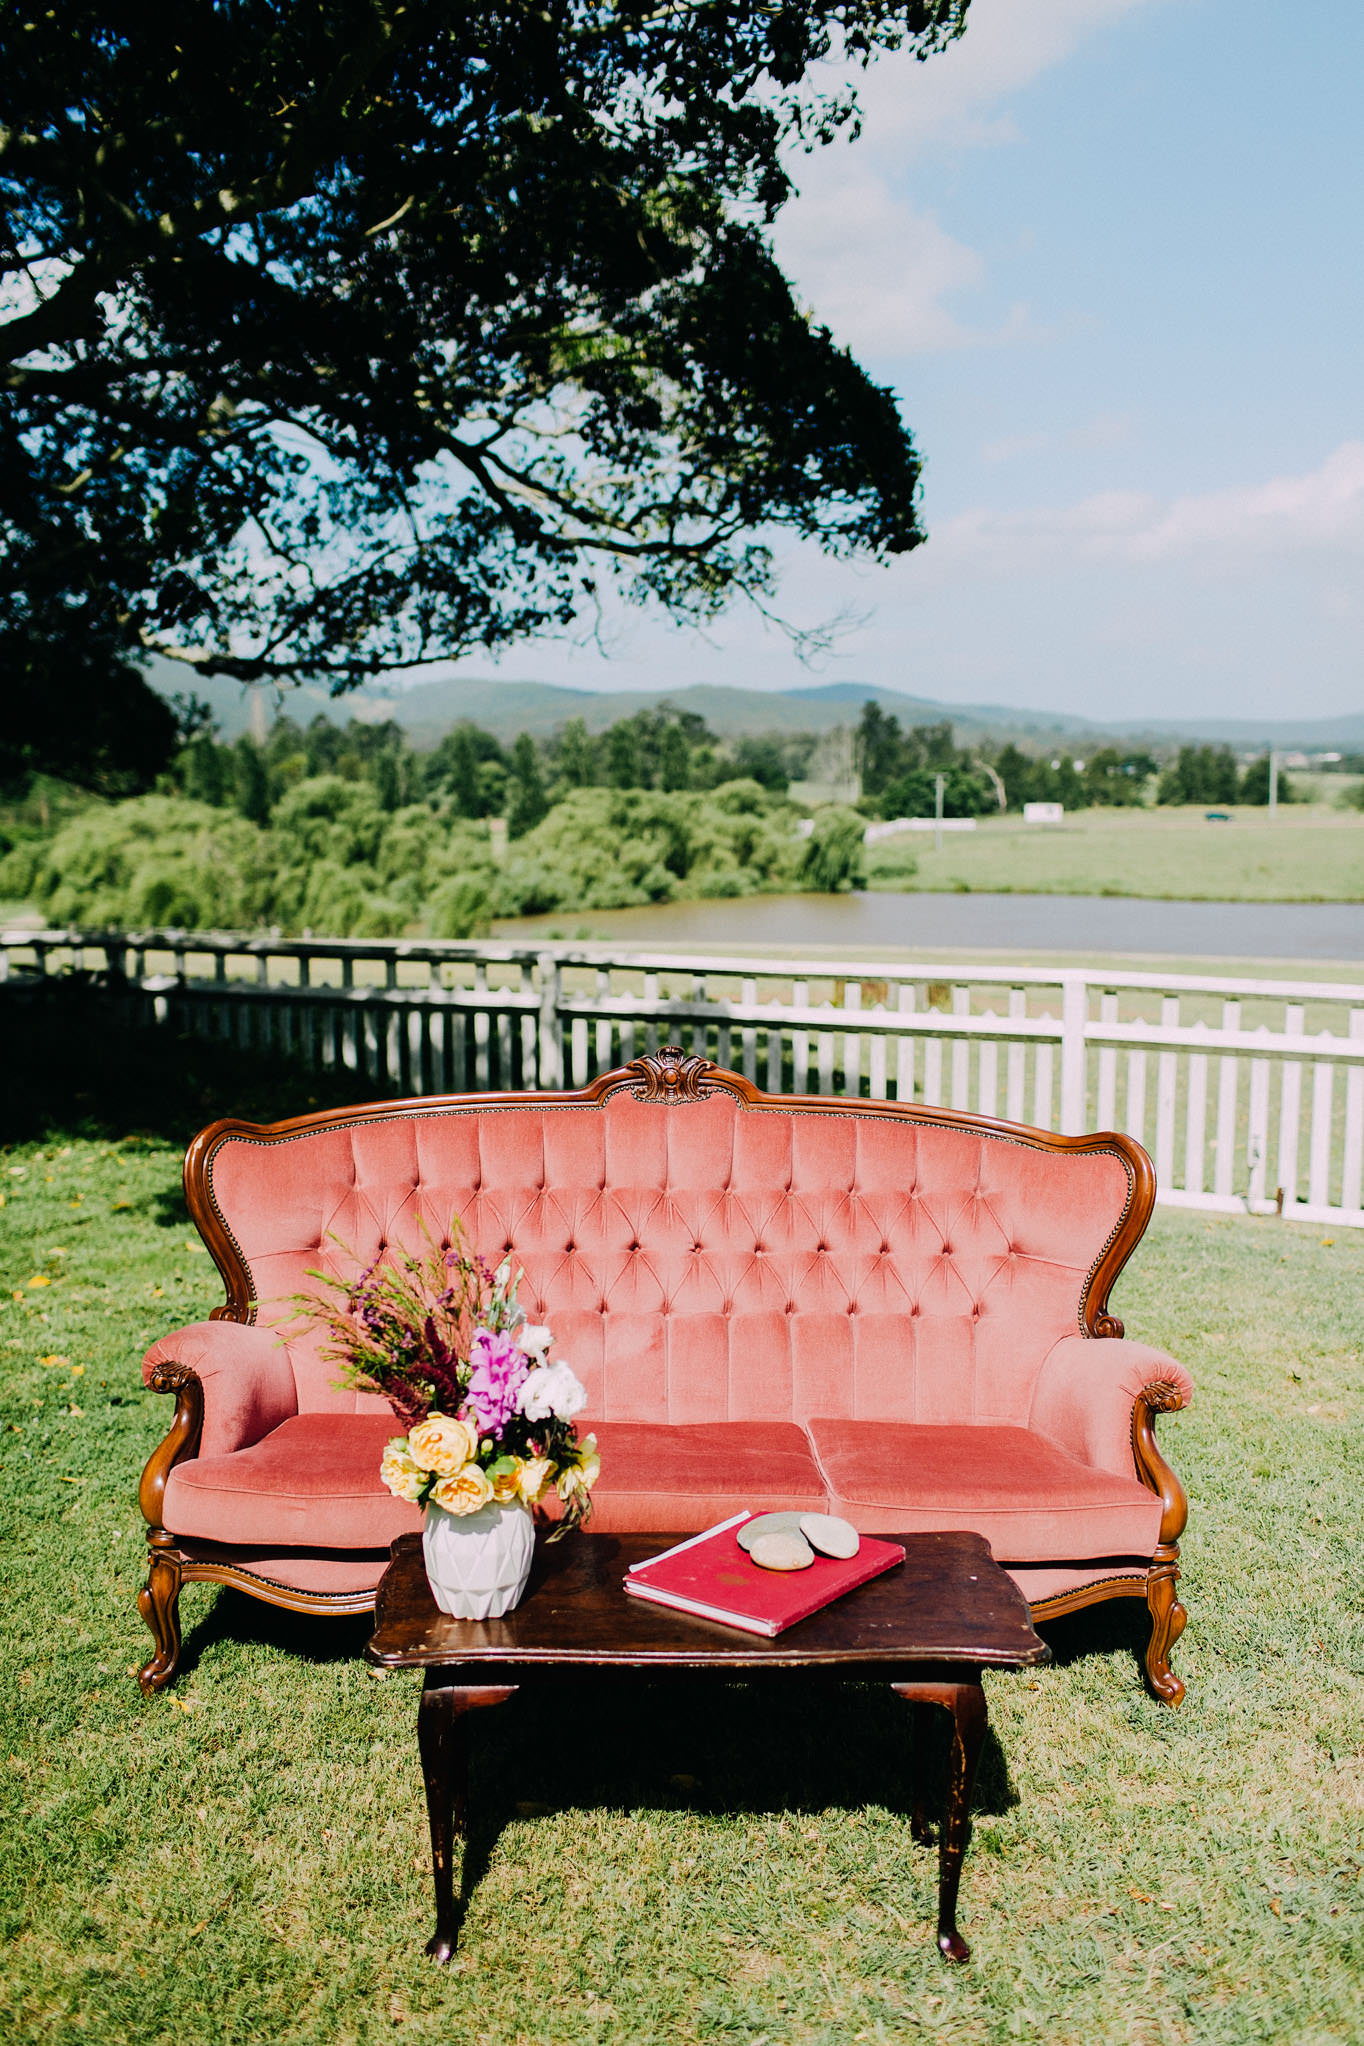 TocalHomestead_WeddingPhotography_LaurenAnnePhotography-1044.jpg